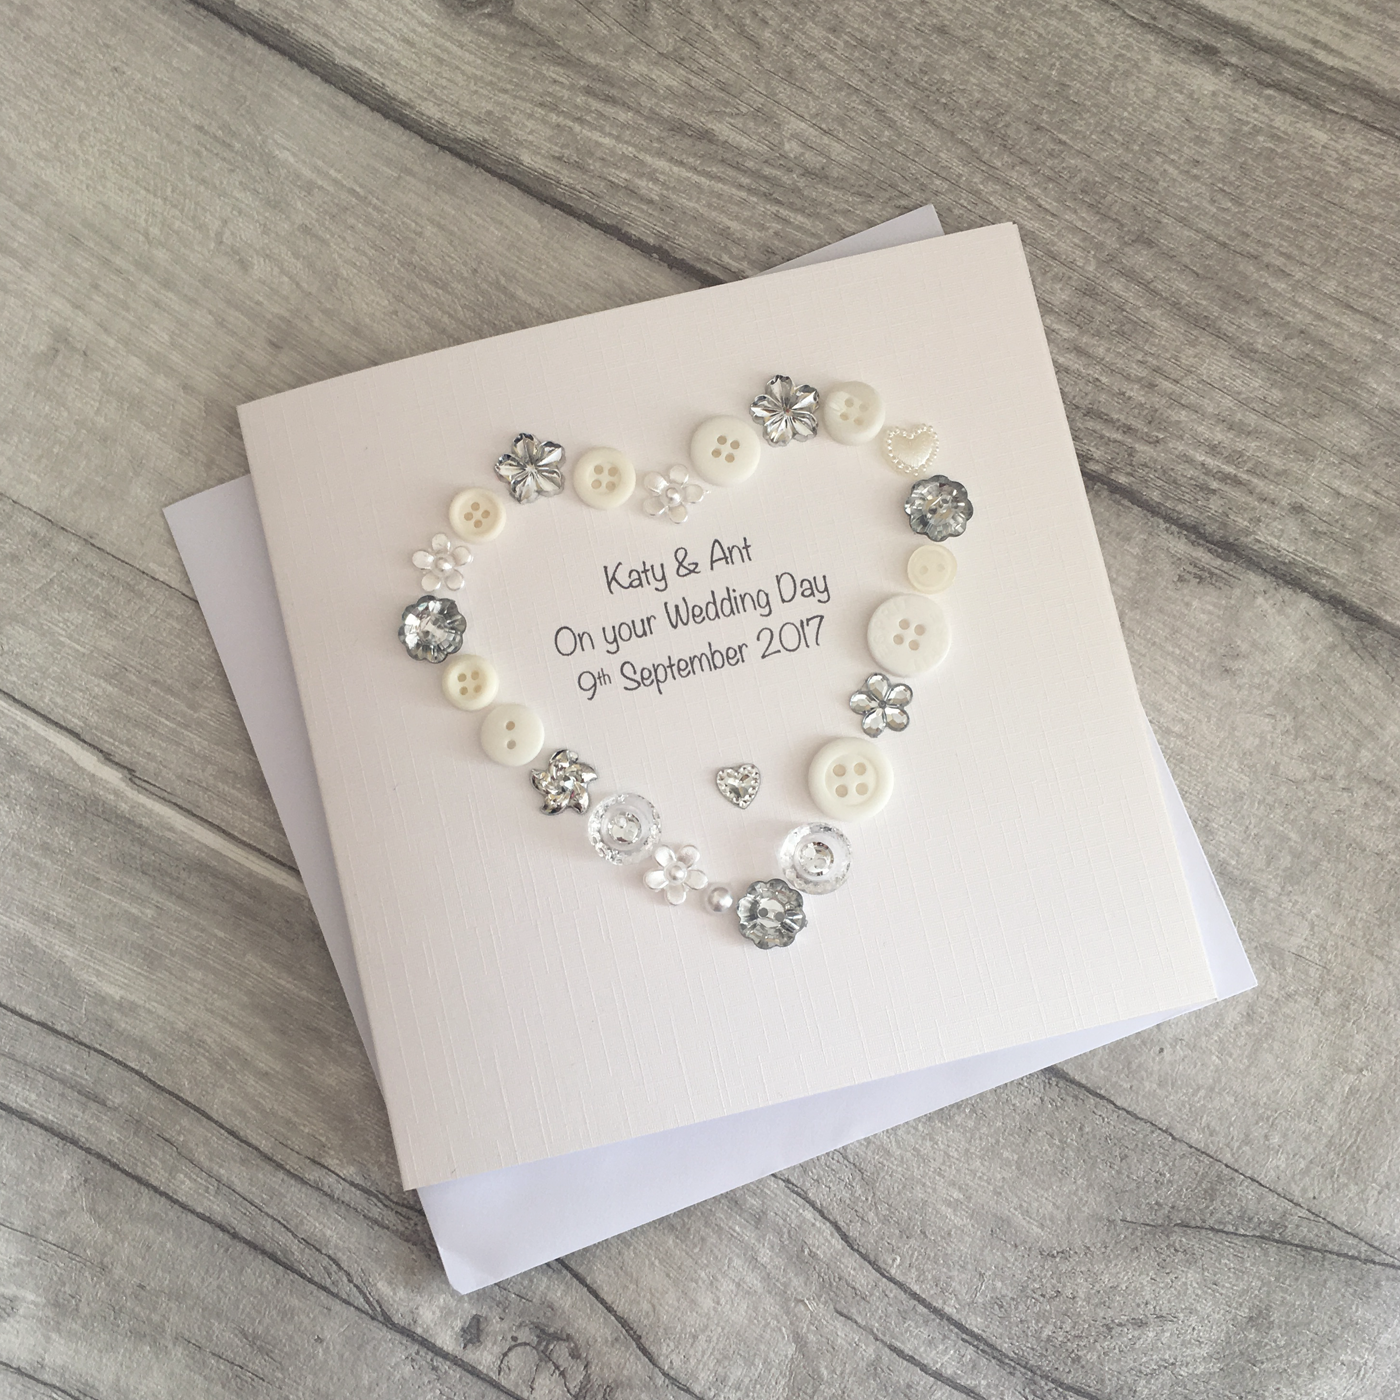 Button Wedding Day Card Personalised - Bride & Groom Card Handmade ...